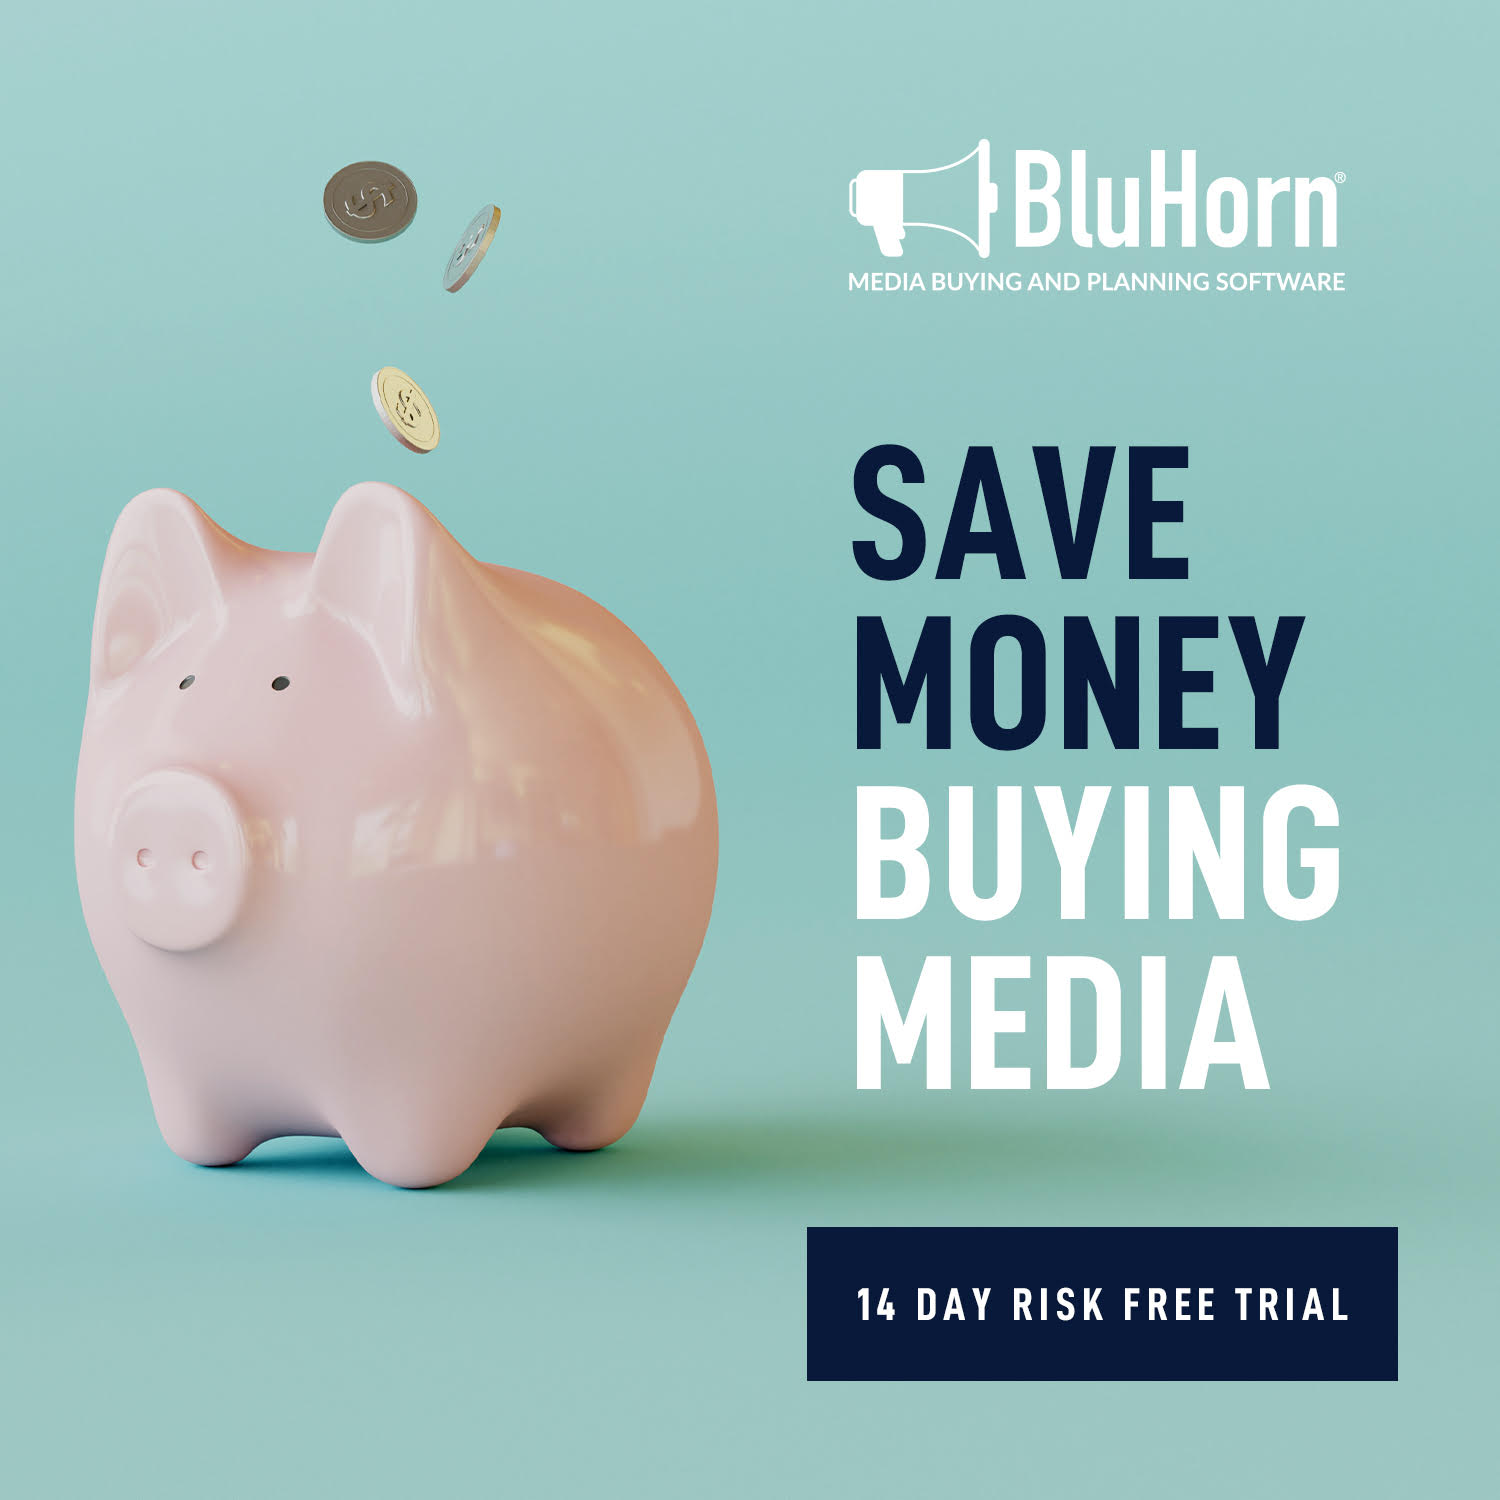 BluHorn Media Planning Software